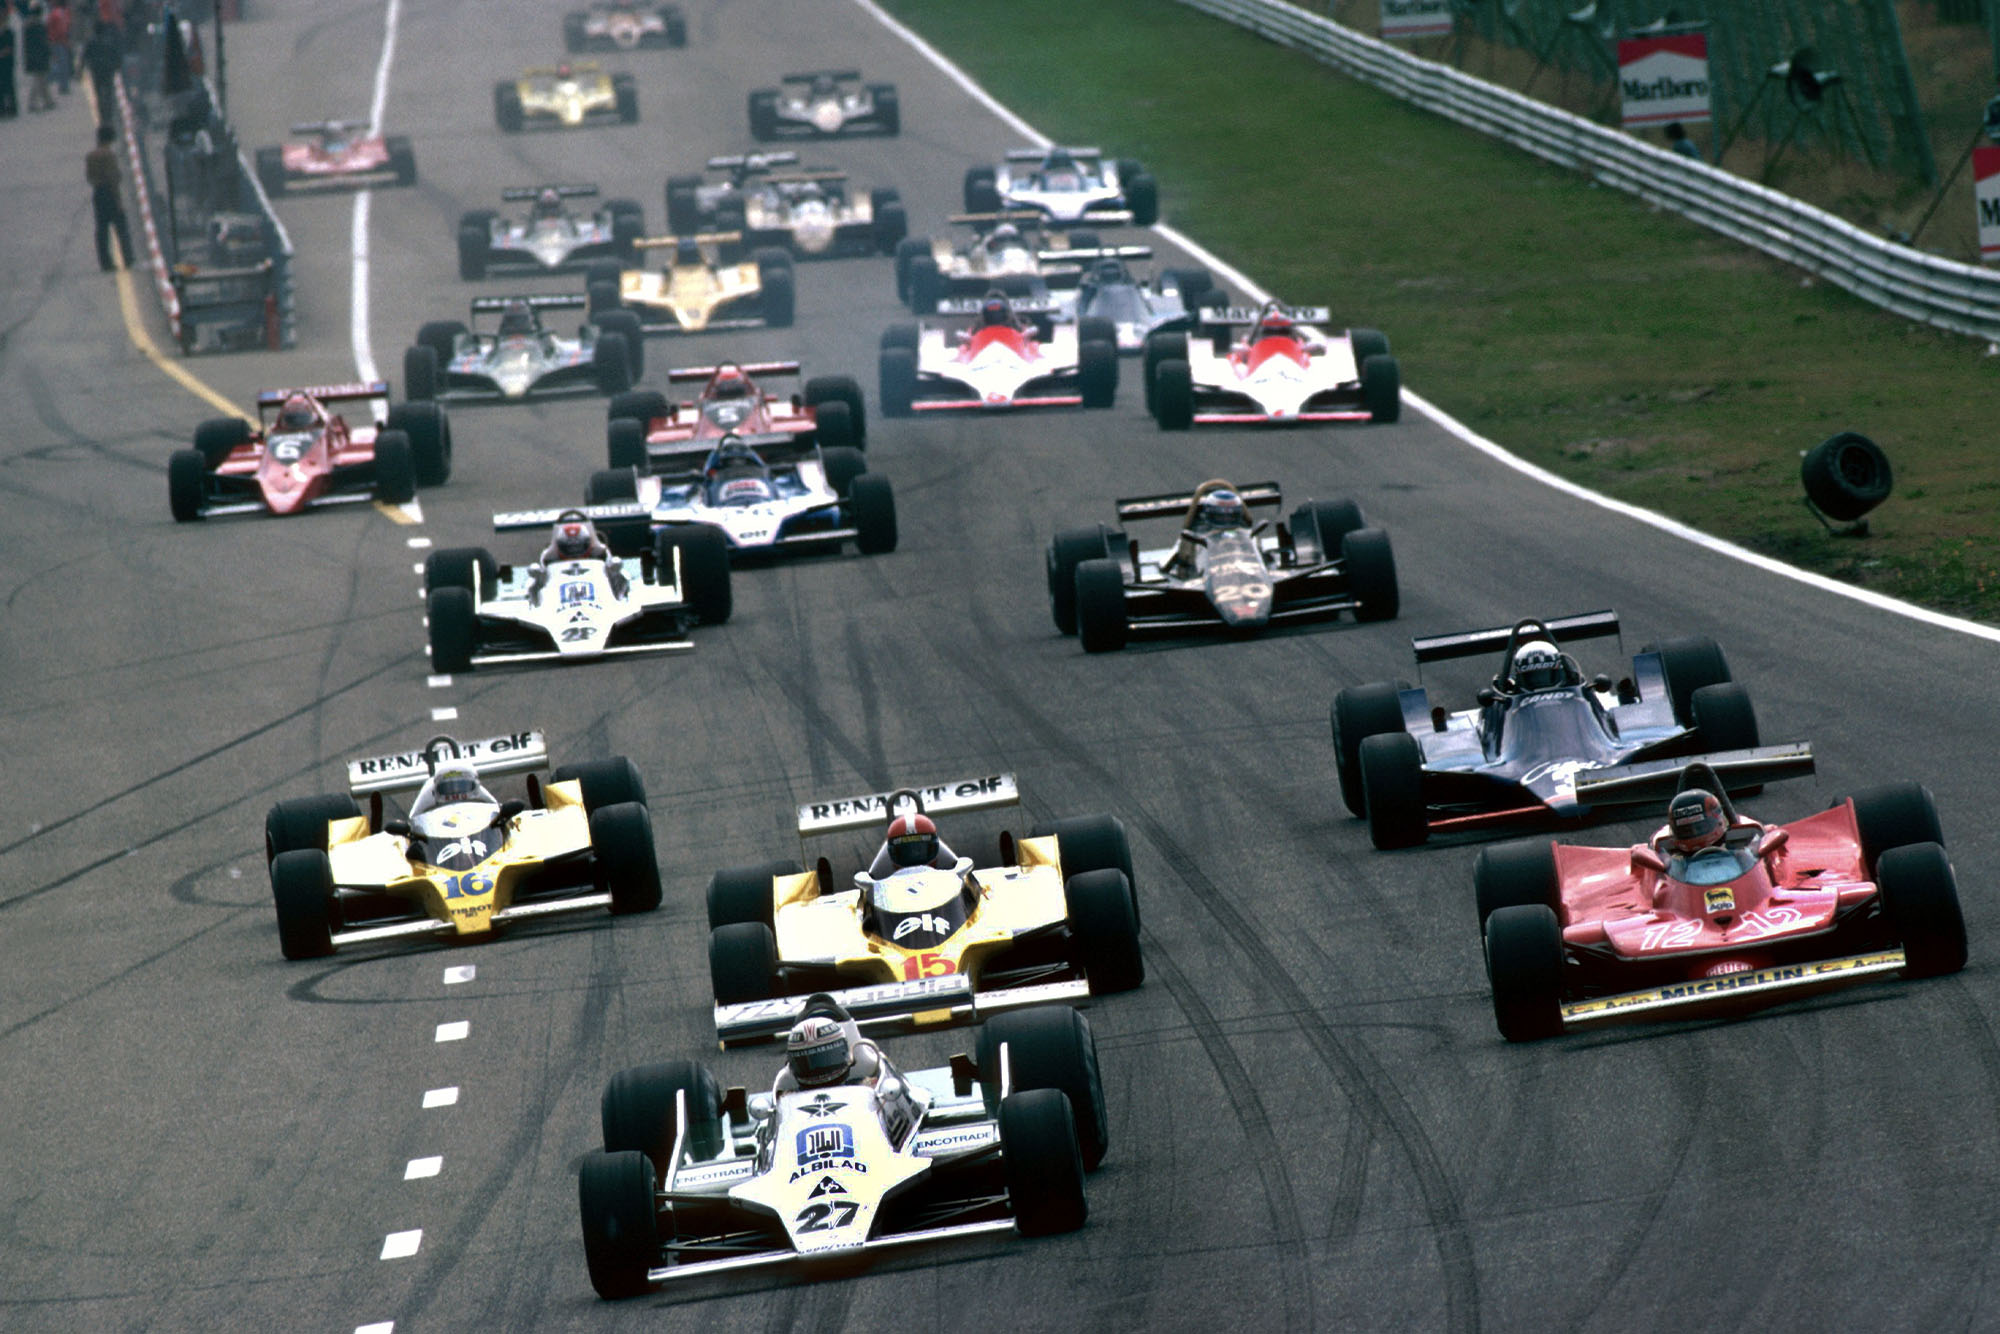 1979 Dutch GP start 2